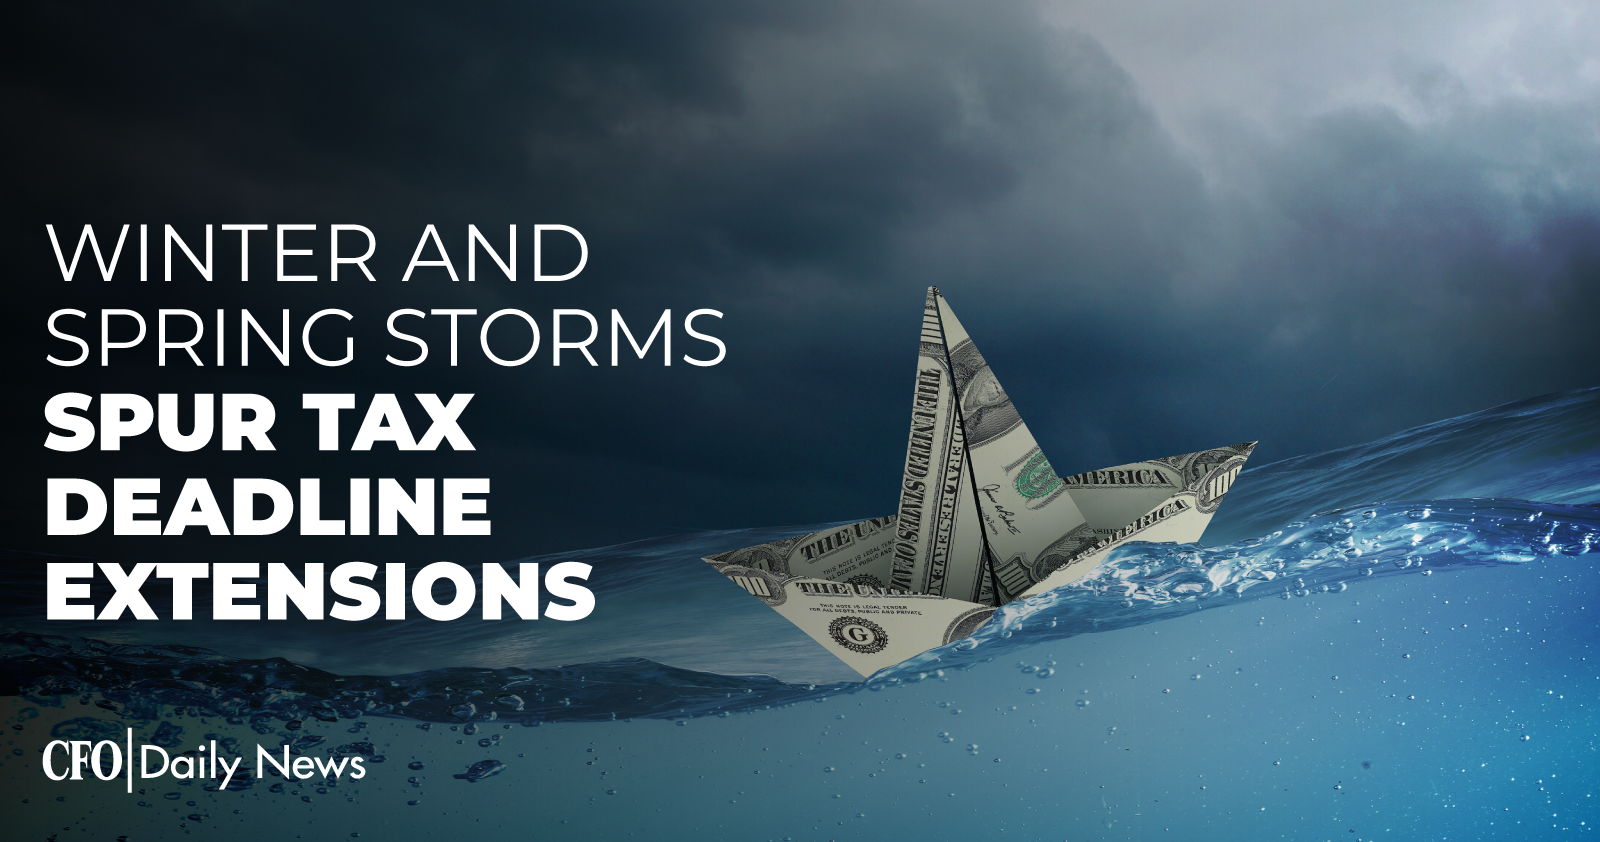 winter and spring storms spur tax deadline extensions